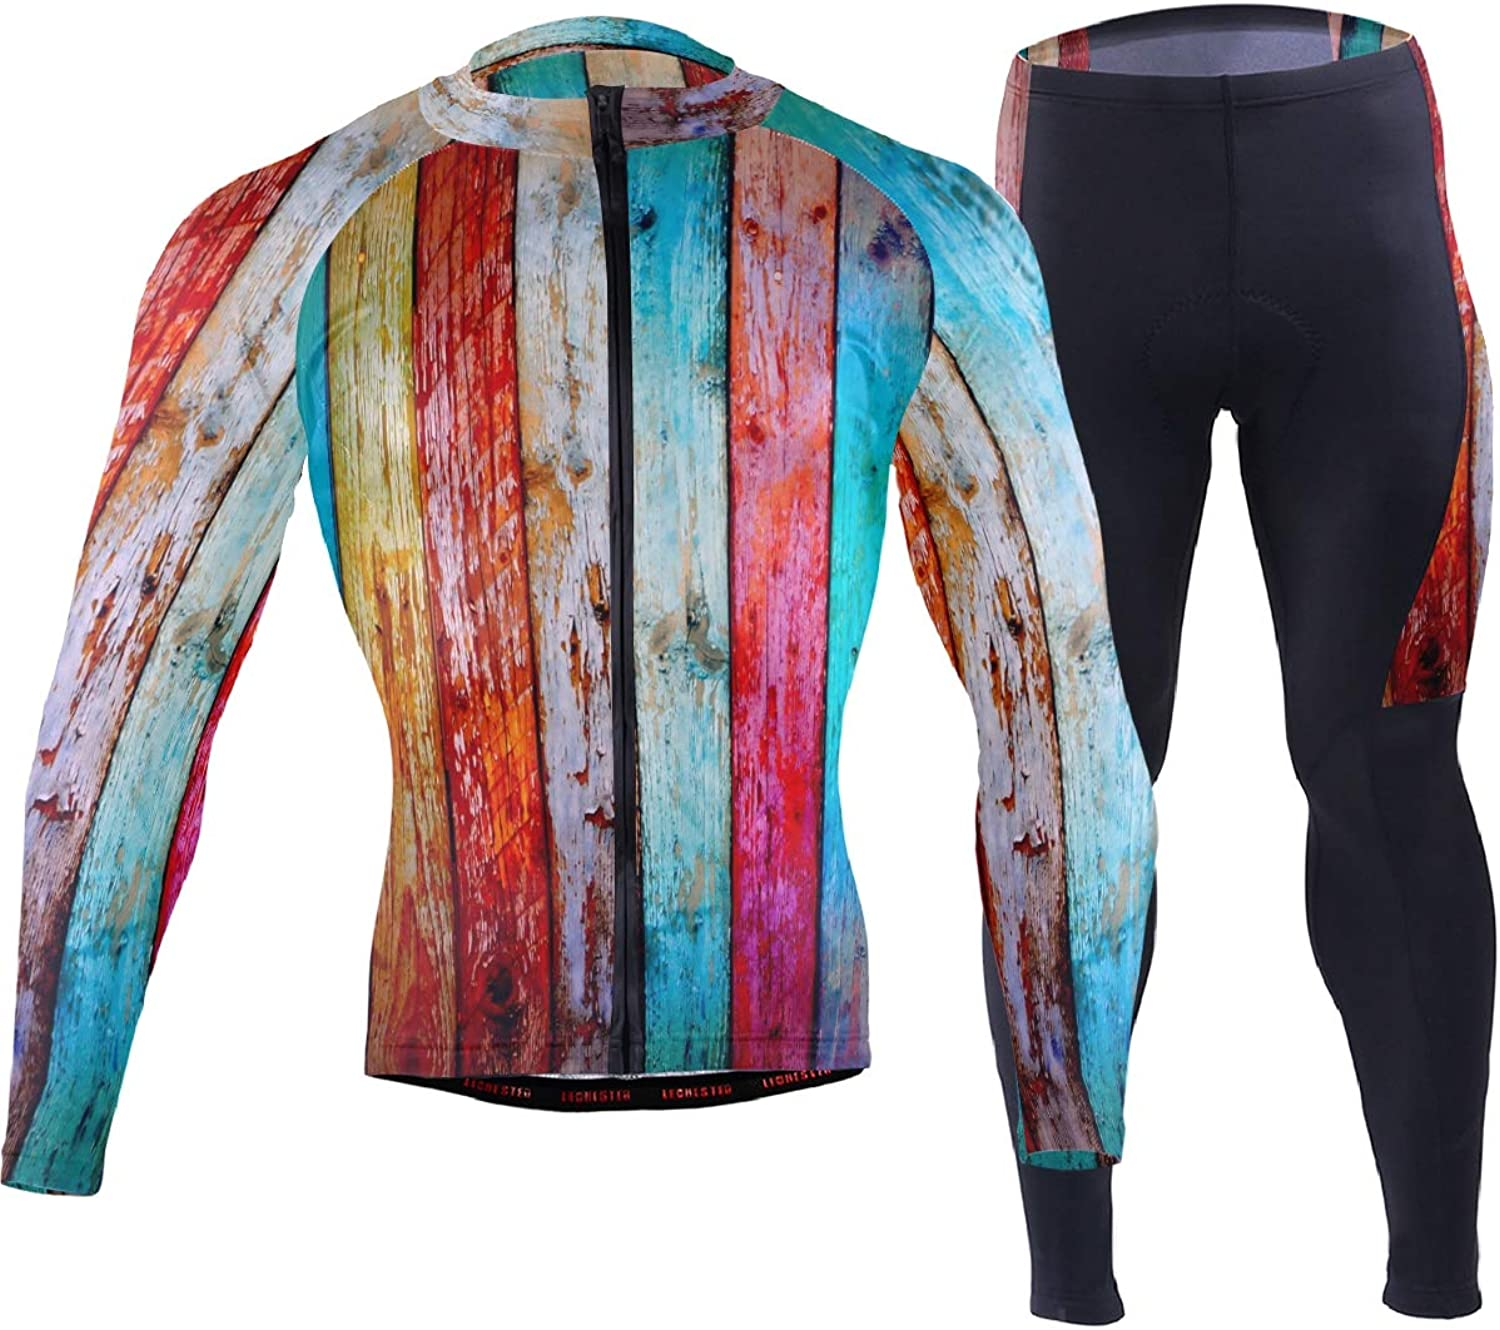 FAJRO colorful Rainbow Grungy Bord Pattern Sportswear Suit Bike Outfit Set Breathable Quick Dry 3D Padded Pants